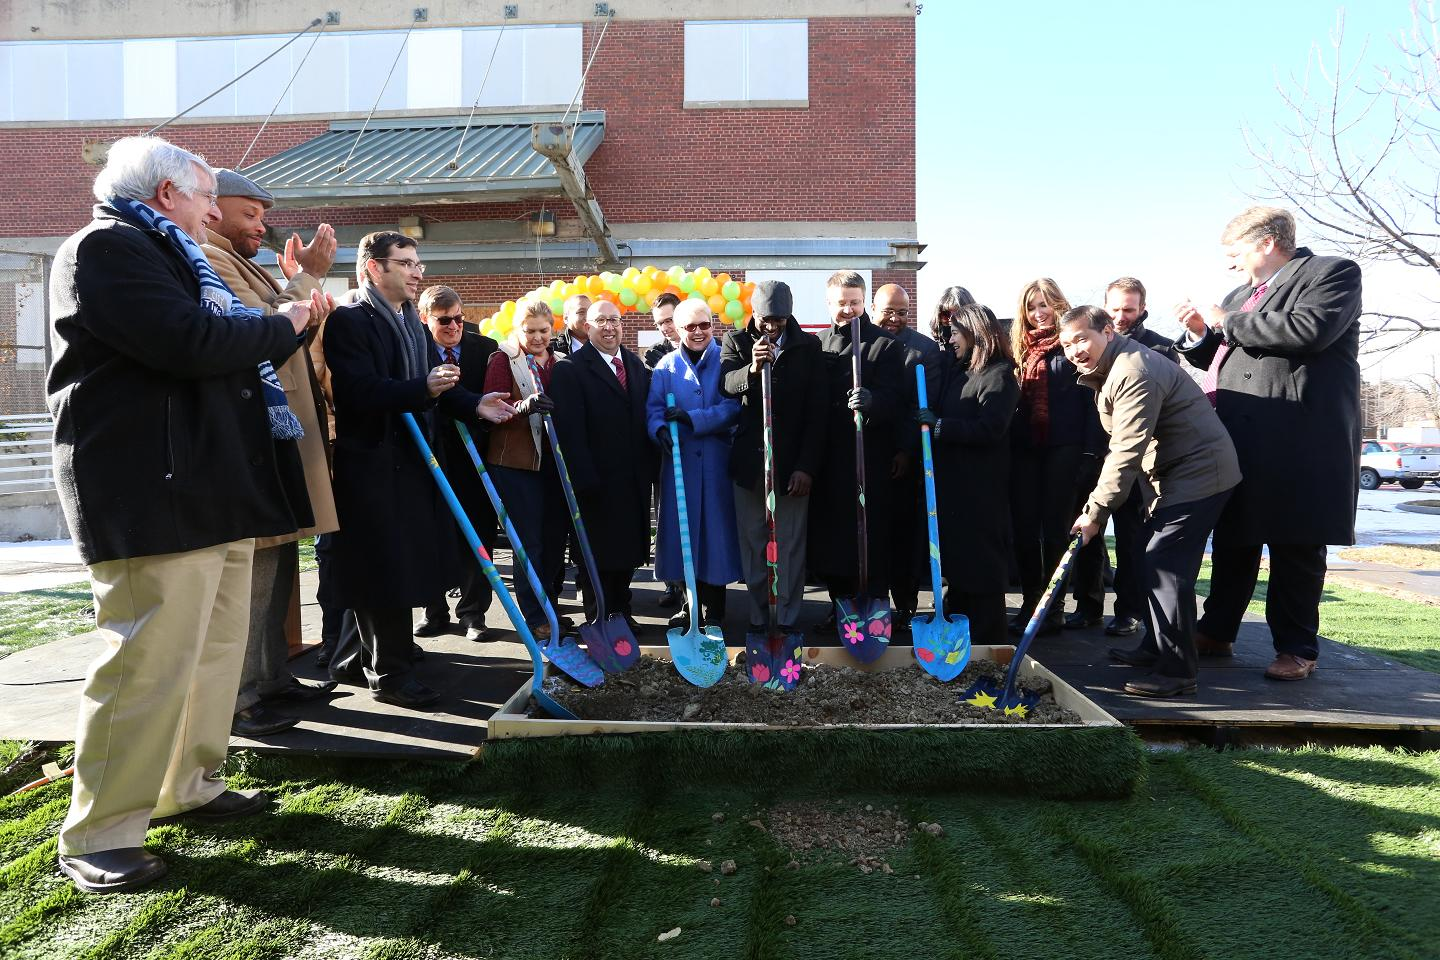 Community members and elected officials joined HREDC to celebrate the groundbreaking.